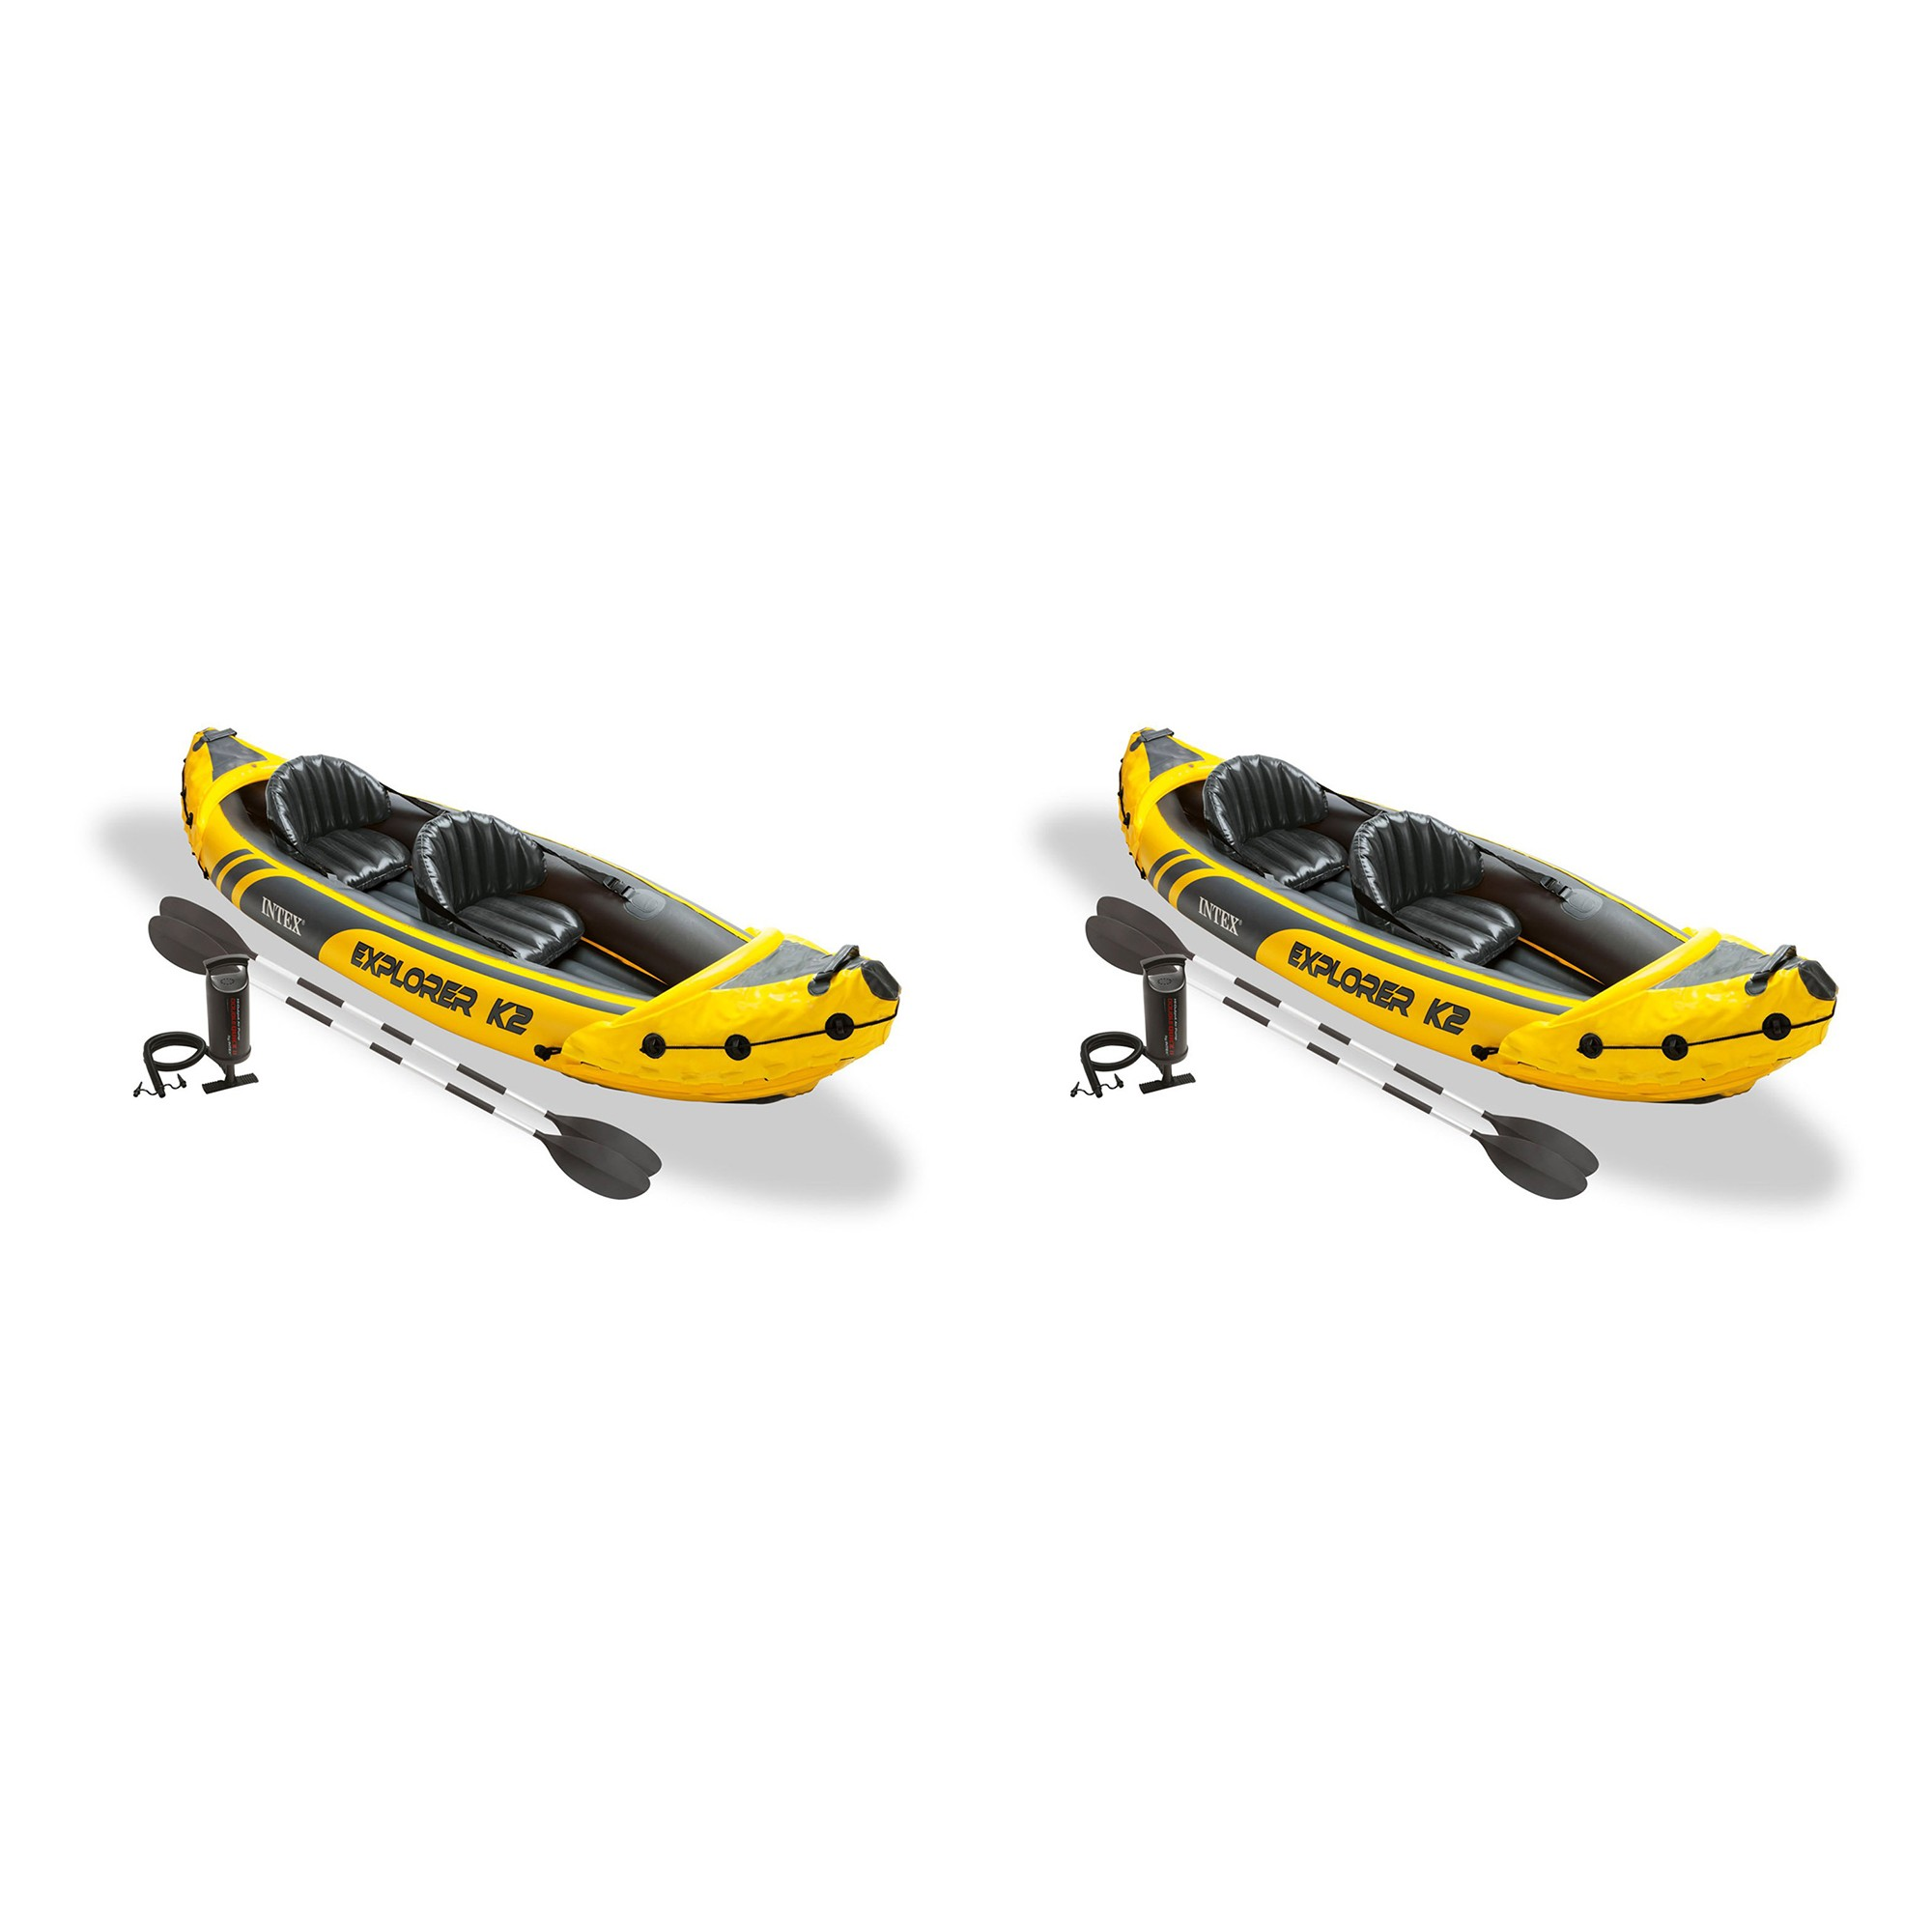 Intex Explorer K2 Yellow 2 Person Inflatable Kayak With Oars Air